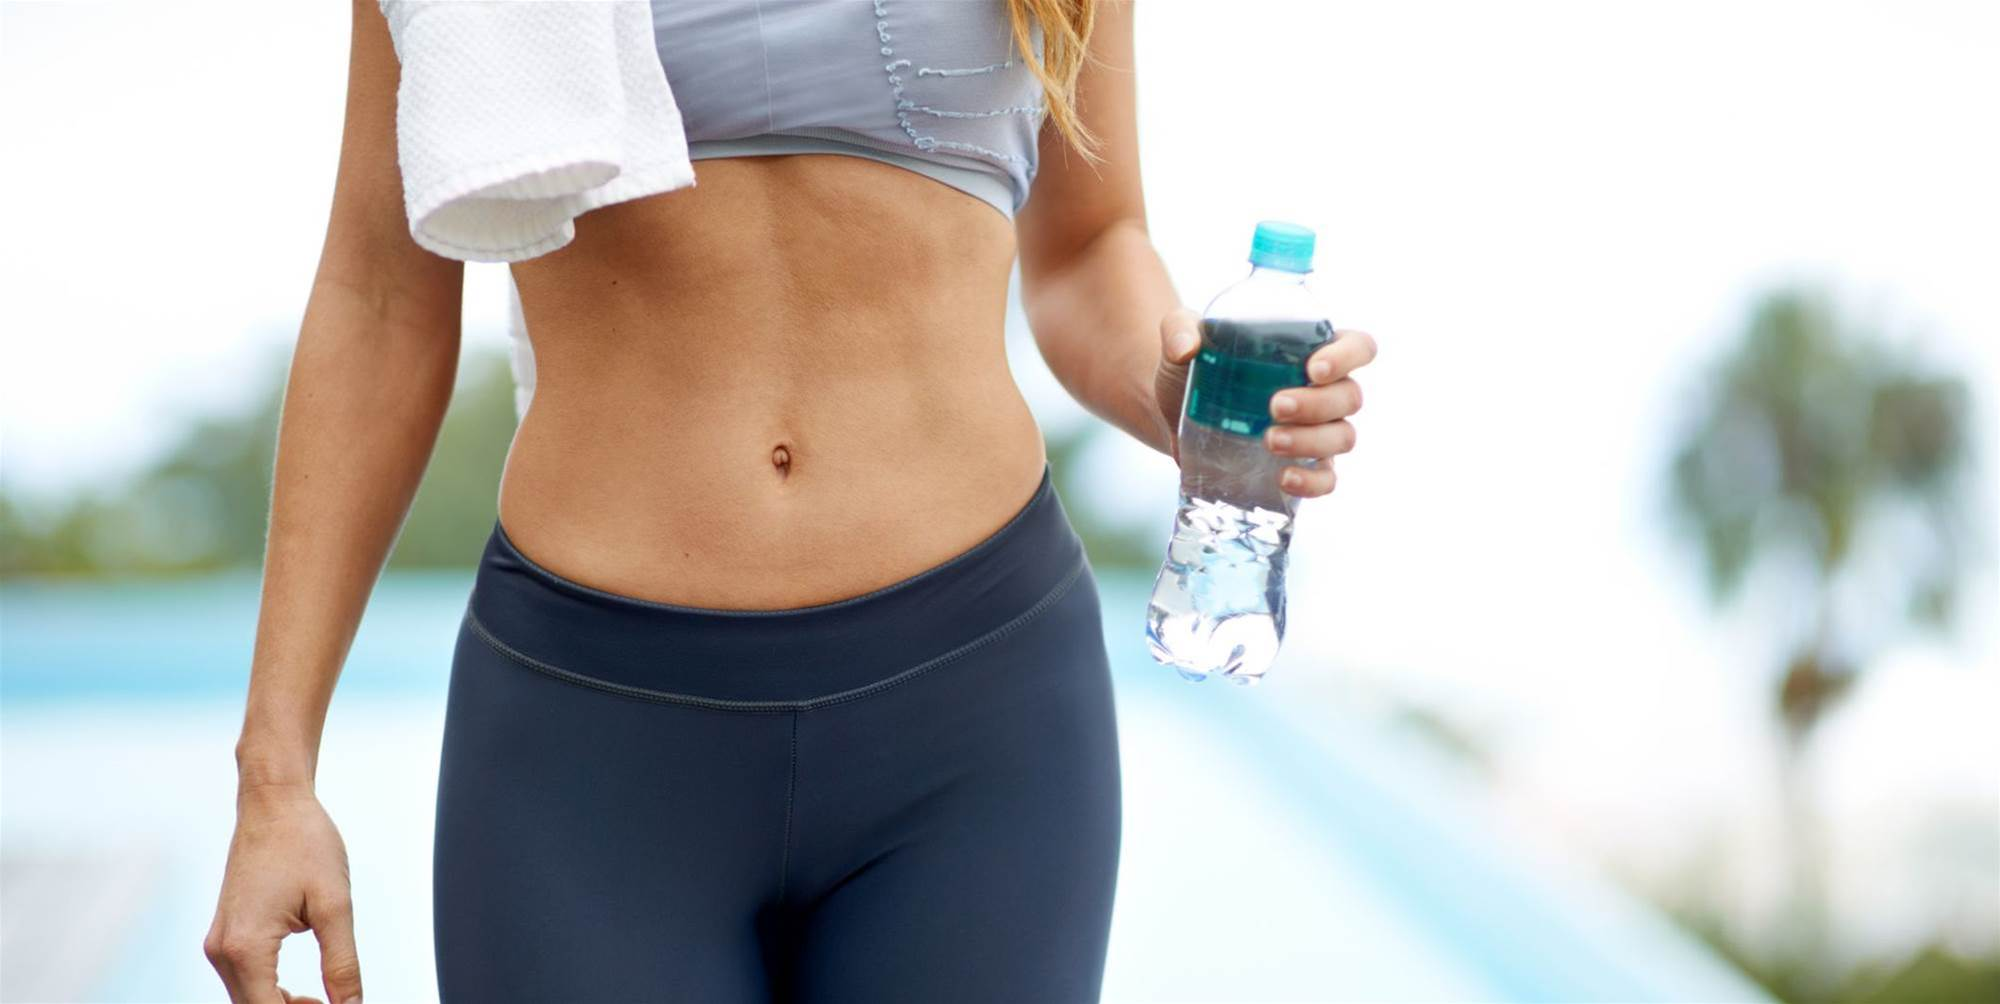 The Secret to Flatter Abs Has Nothing to Do With Crunches